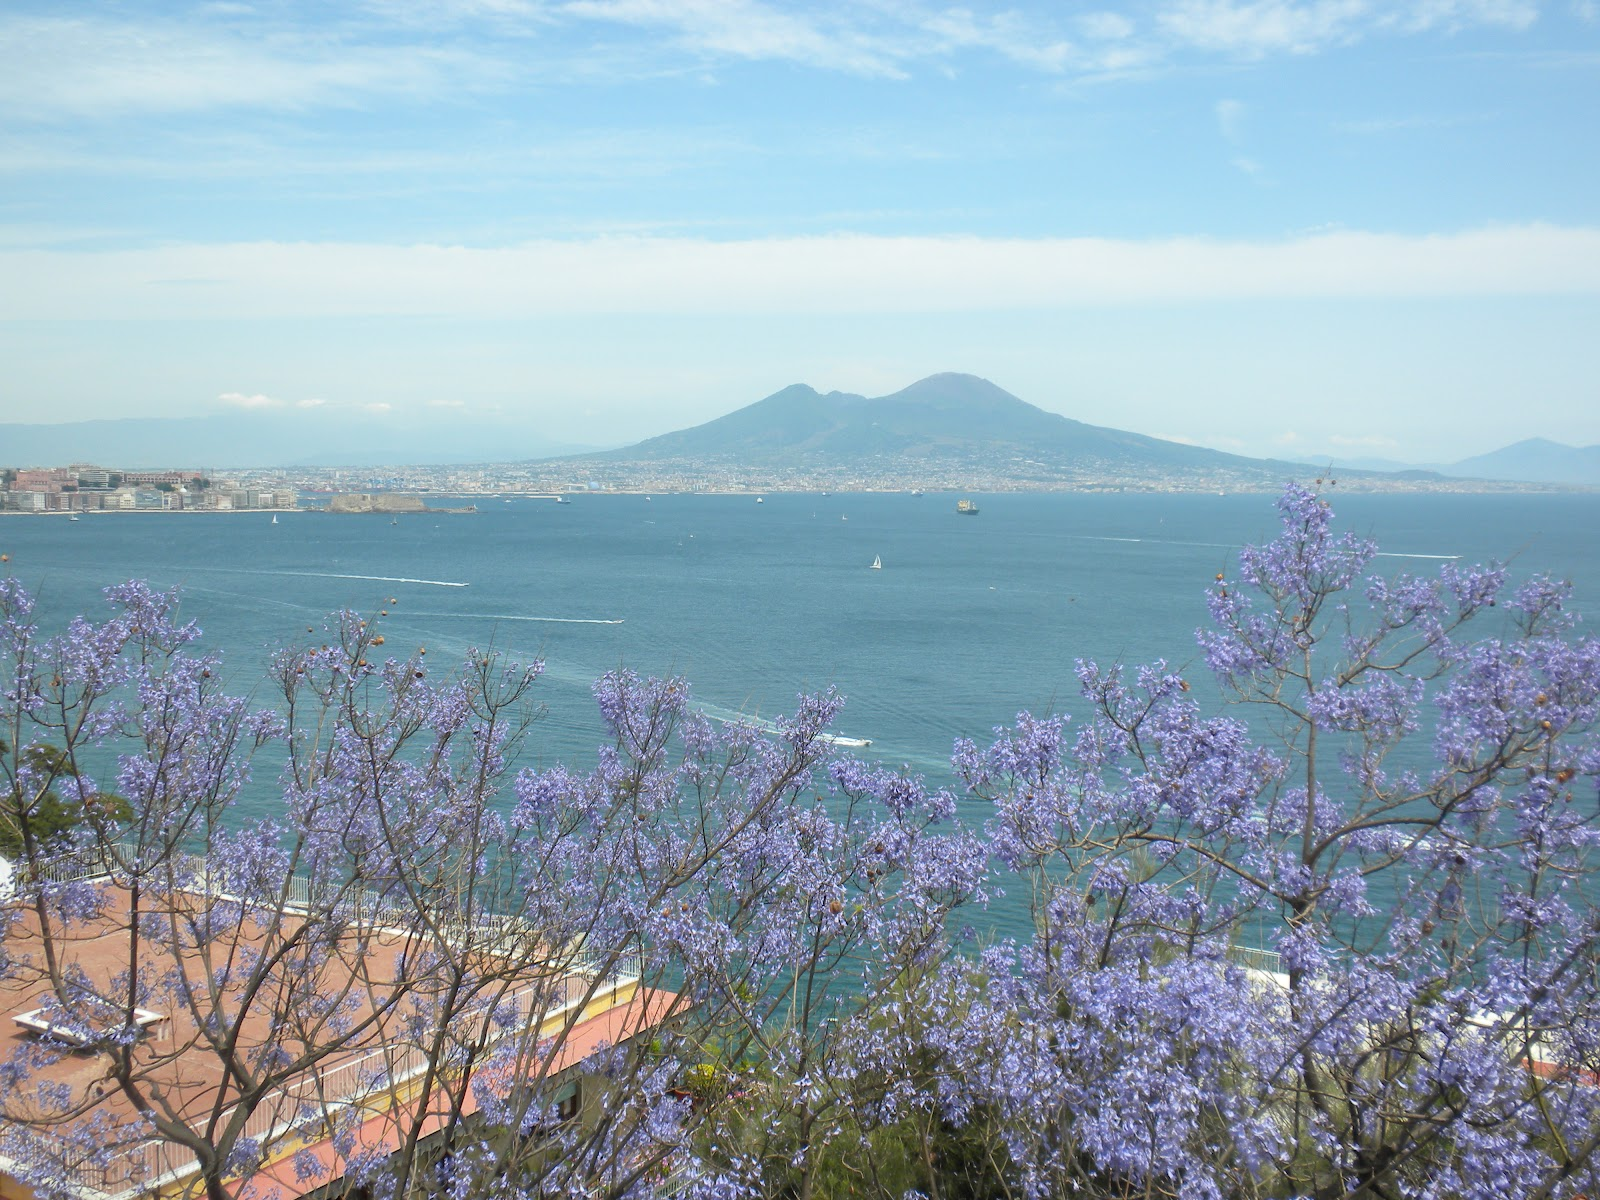 Showing 18 pics for mount vesuvius today